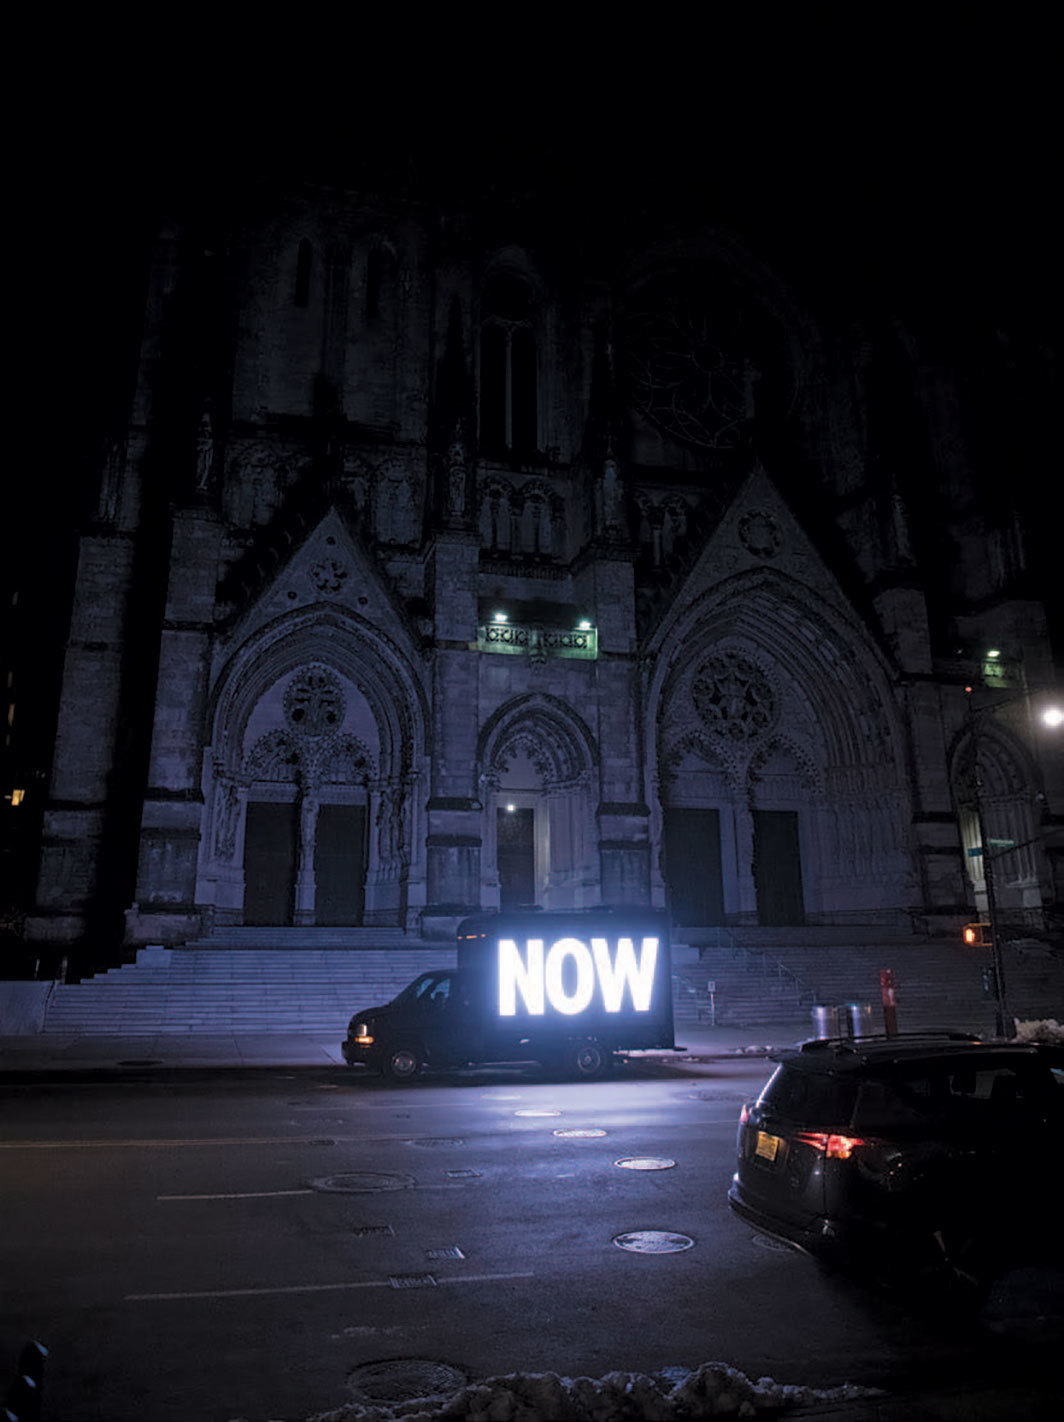 Jenny Holzer, IT IS GUNS, 2018, LED screens on trucks. Installation view, New York, 2018. Photo: Joe Carrotta.